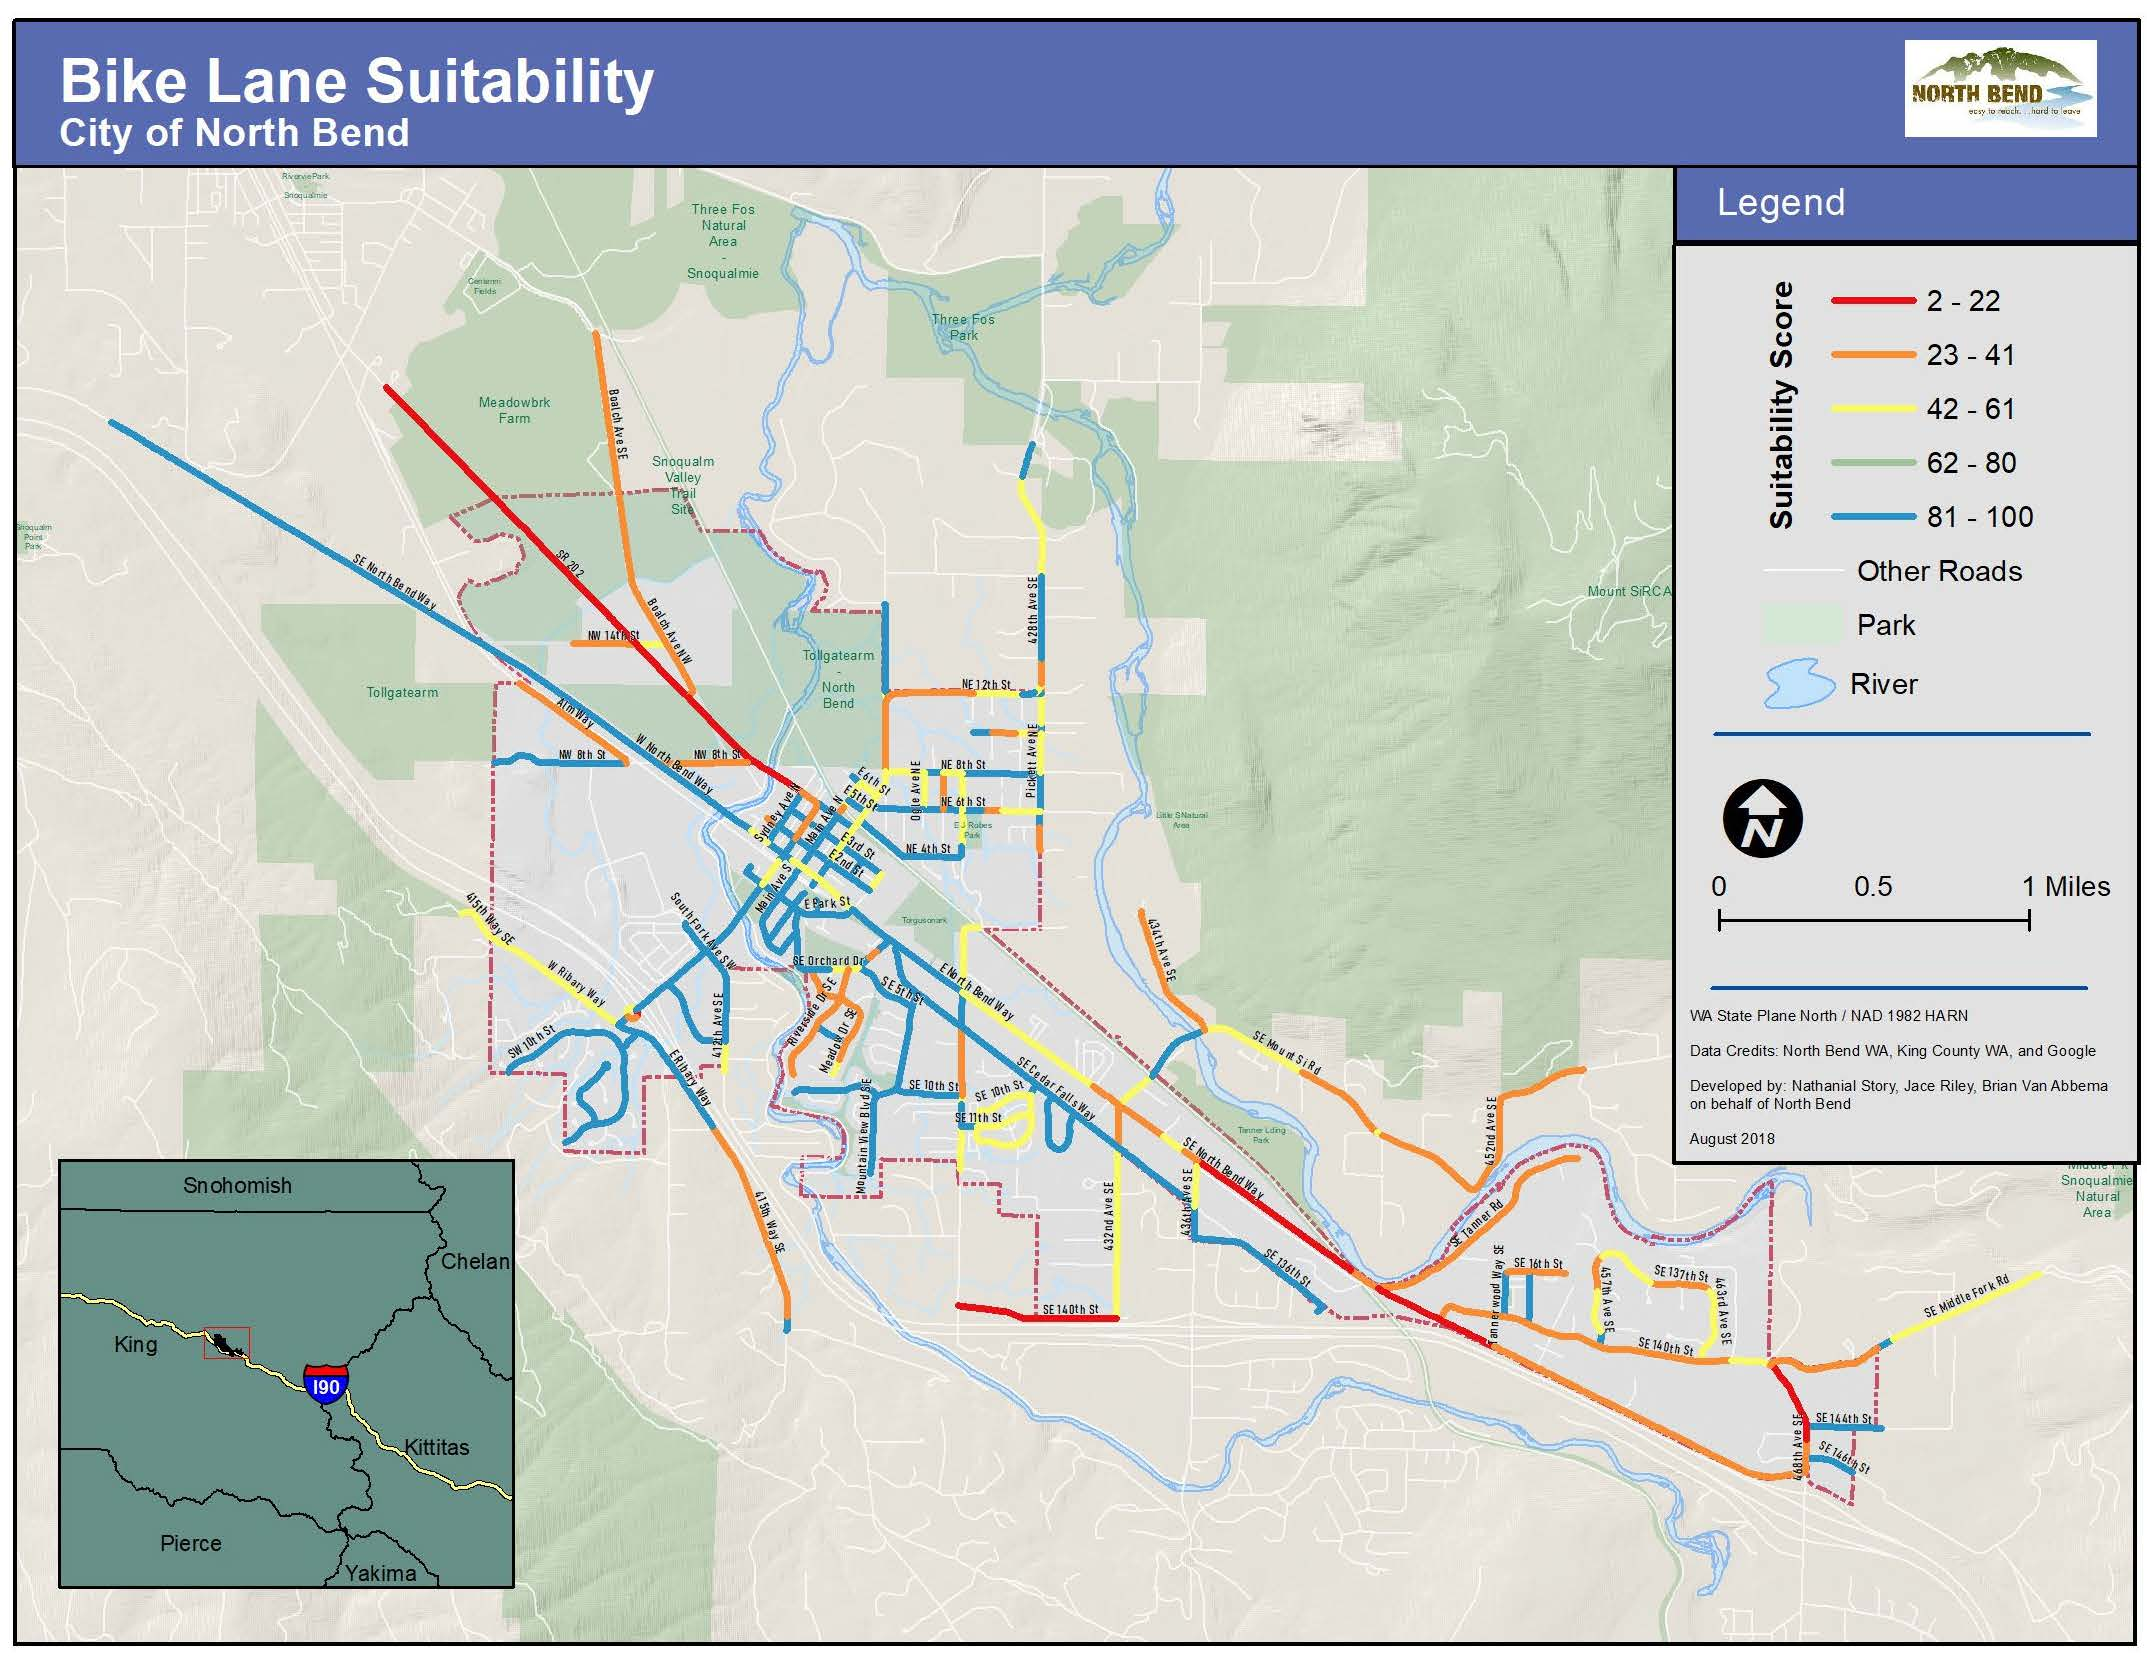 Bike Route Suitability Map